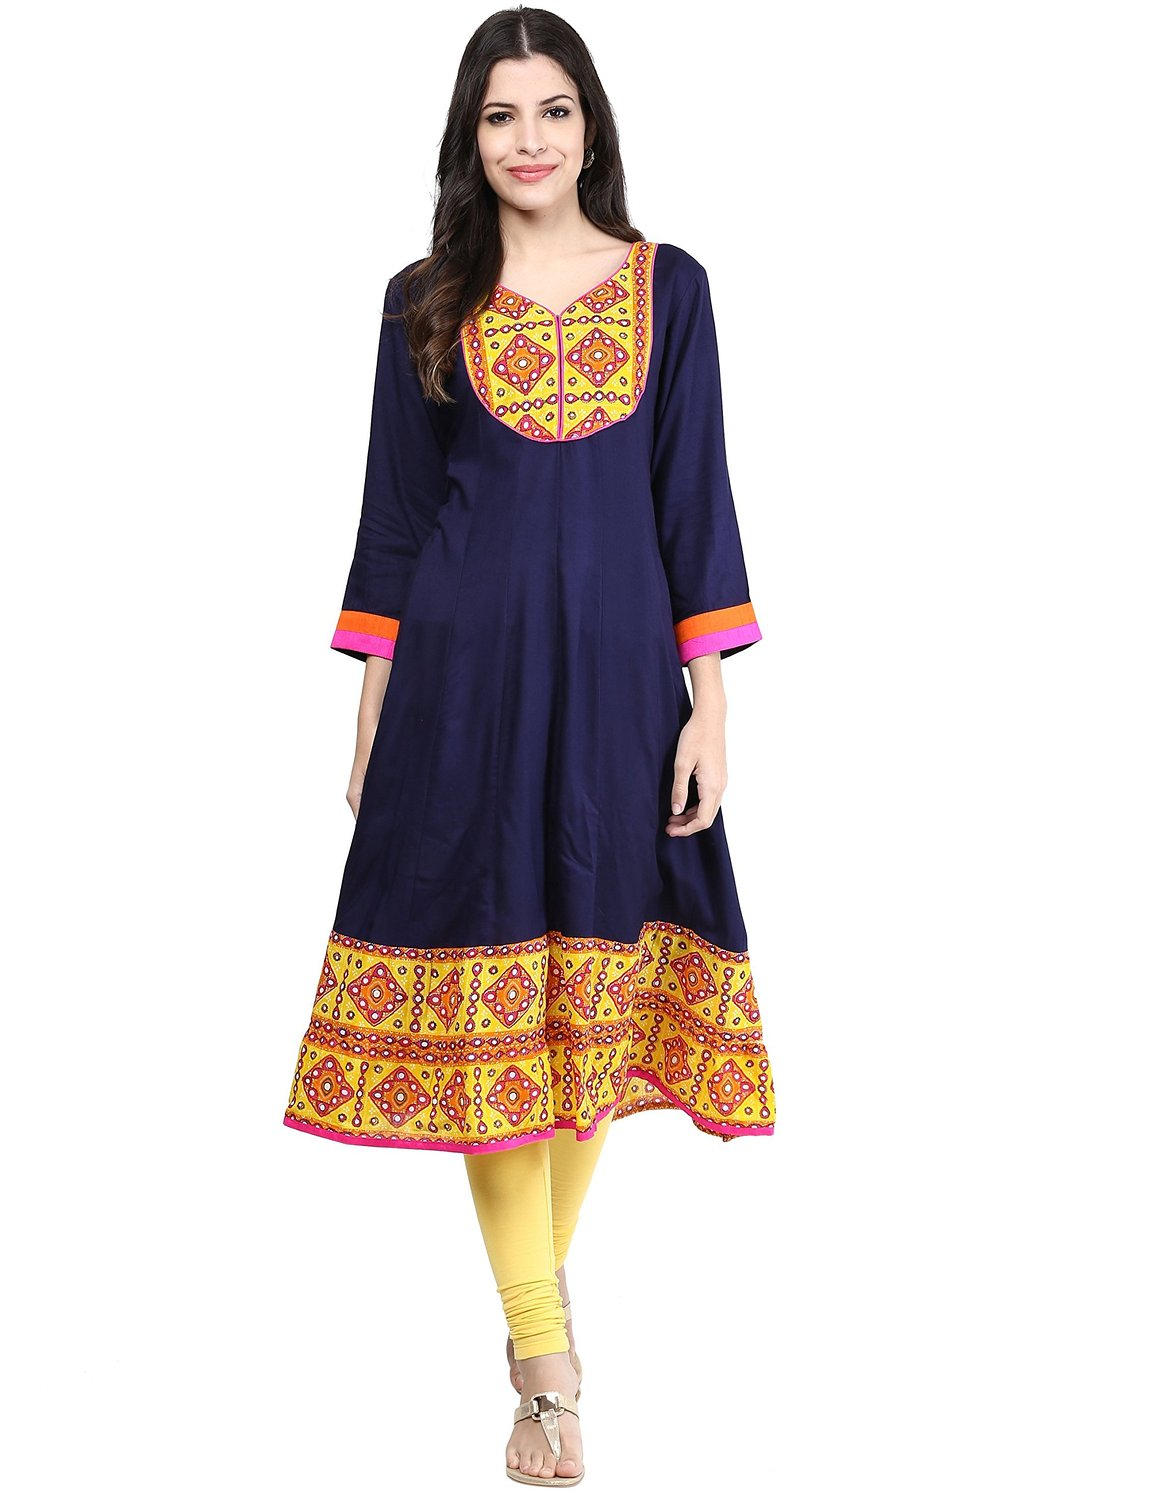 Anarkali Kurta online at low price